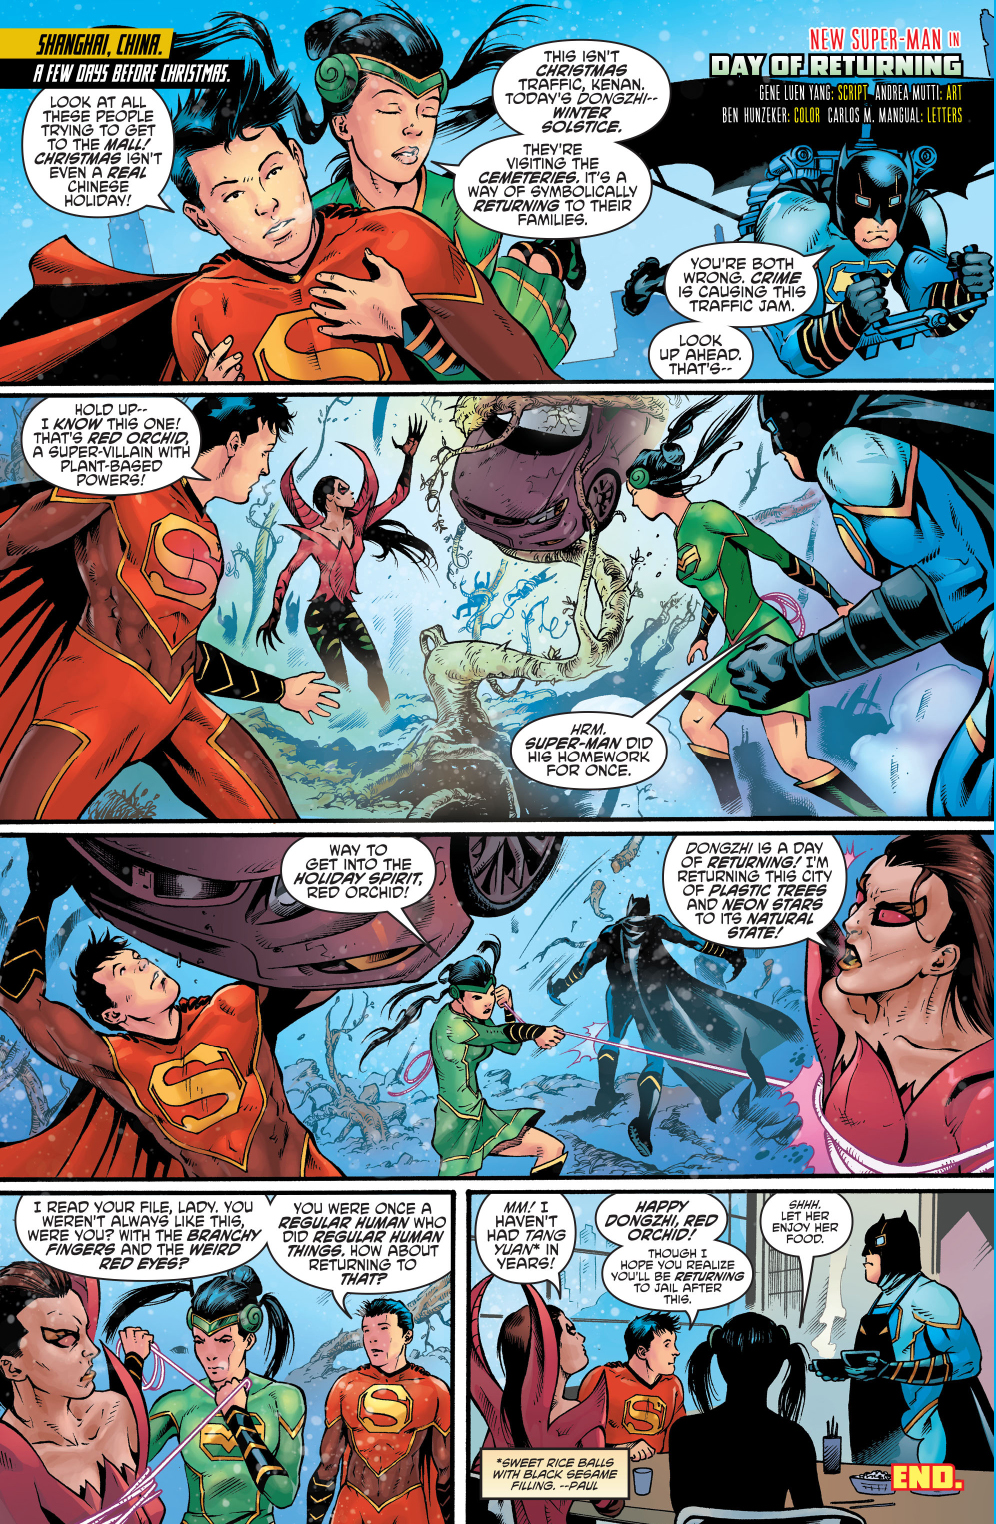 The Chinese Justice League Celebrates The Dongzhi Festival